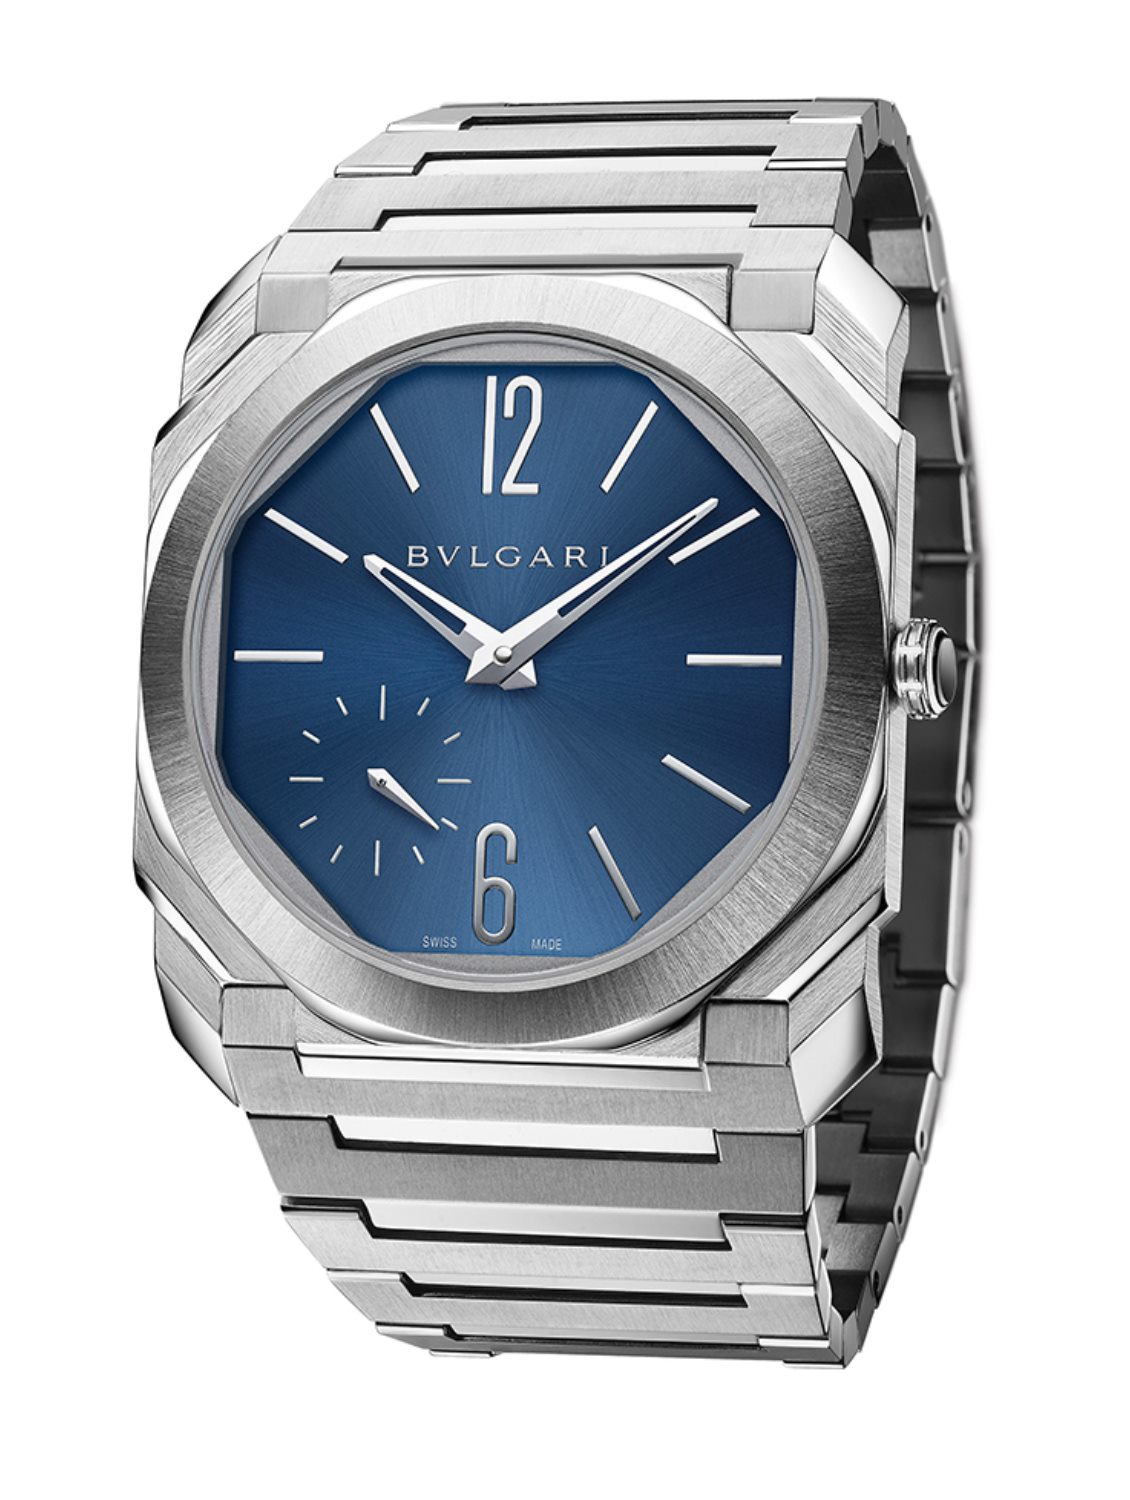 Bvlgari Octo Finissimo Automatic Steel Blue Dial pack